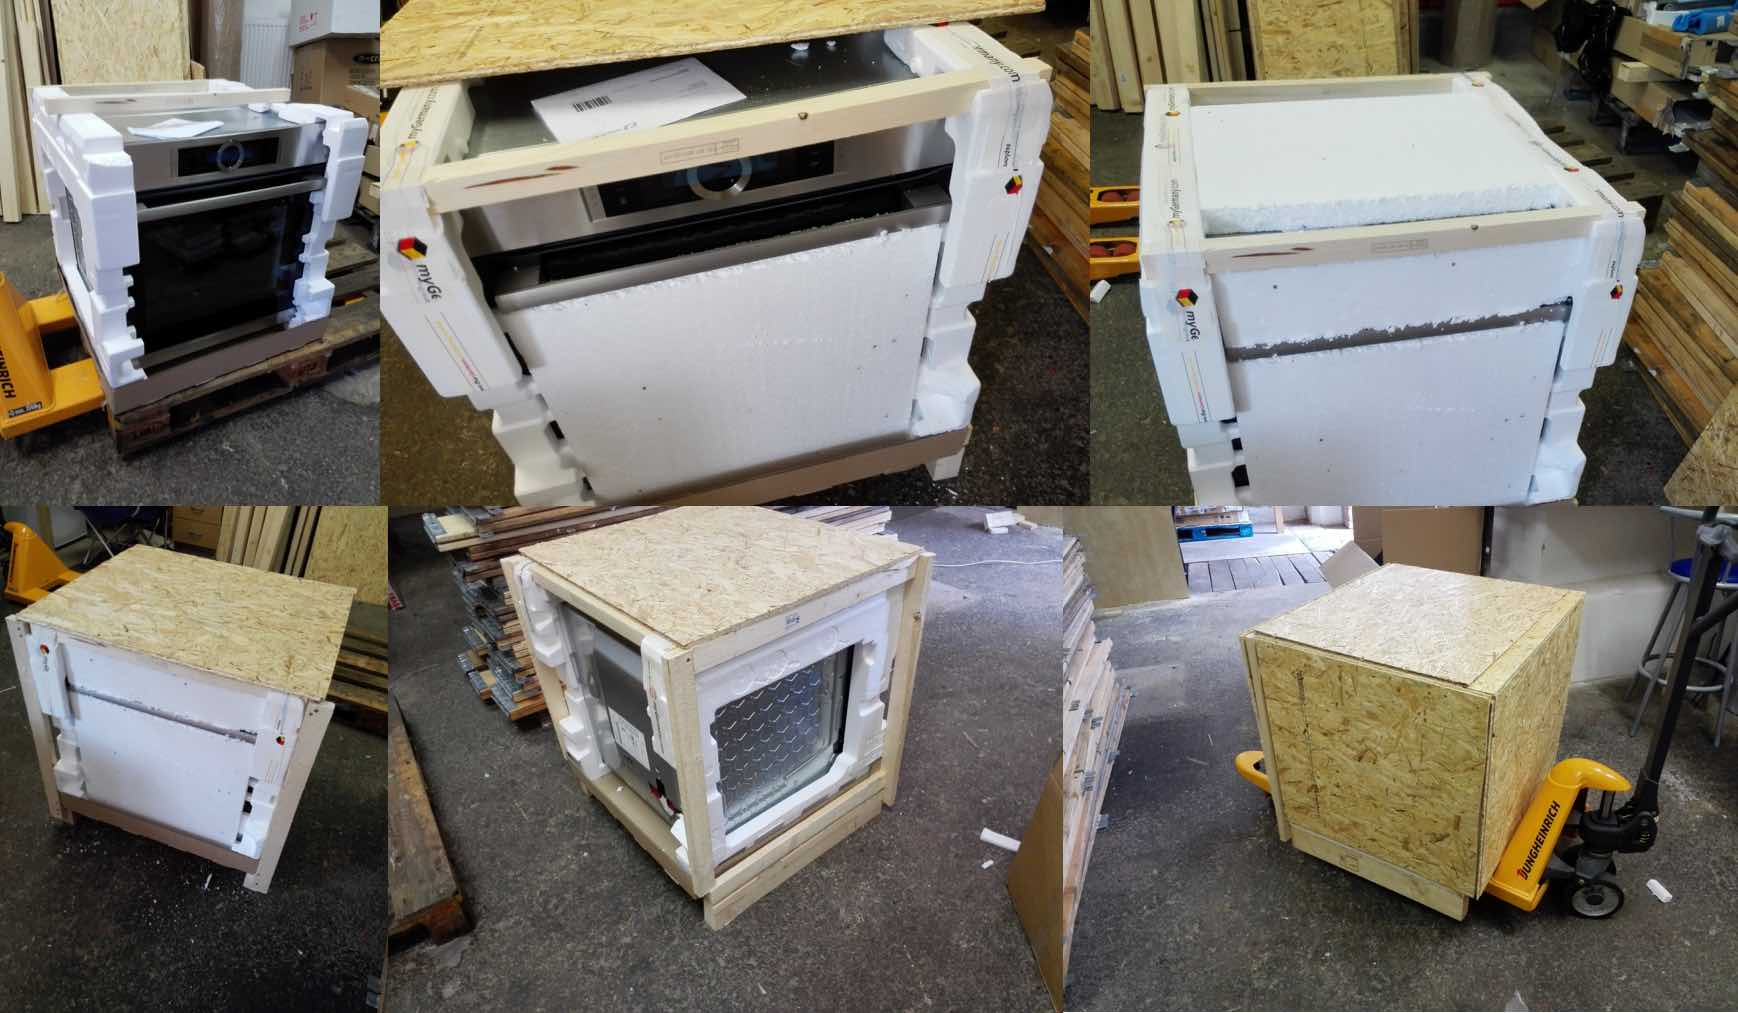 oven packed in 30min, secure for its long international shipment